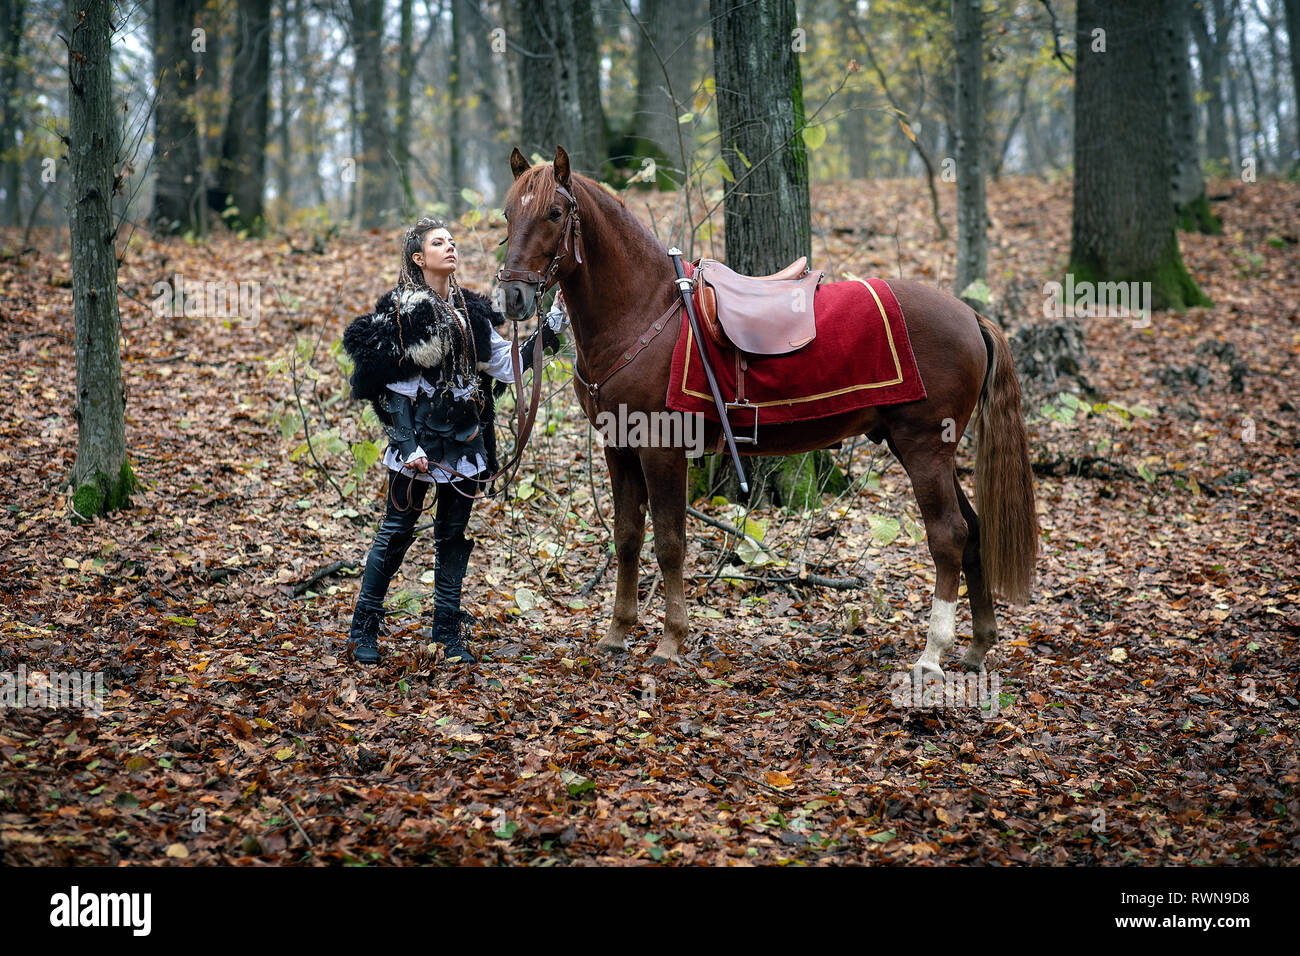 Warrior Beauty With Her Horse In The Woods Viking Woman Reconstruction Of A Medieval War Scene In The Woods In Autumn Stock Photo Alamy